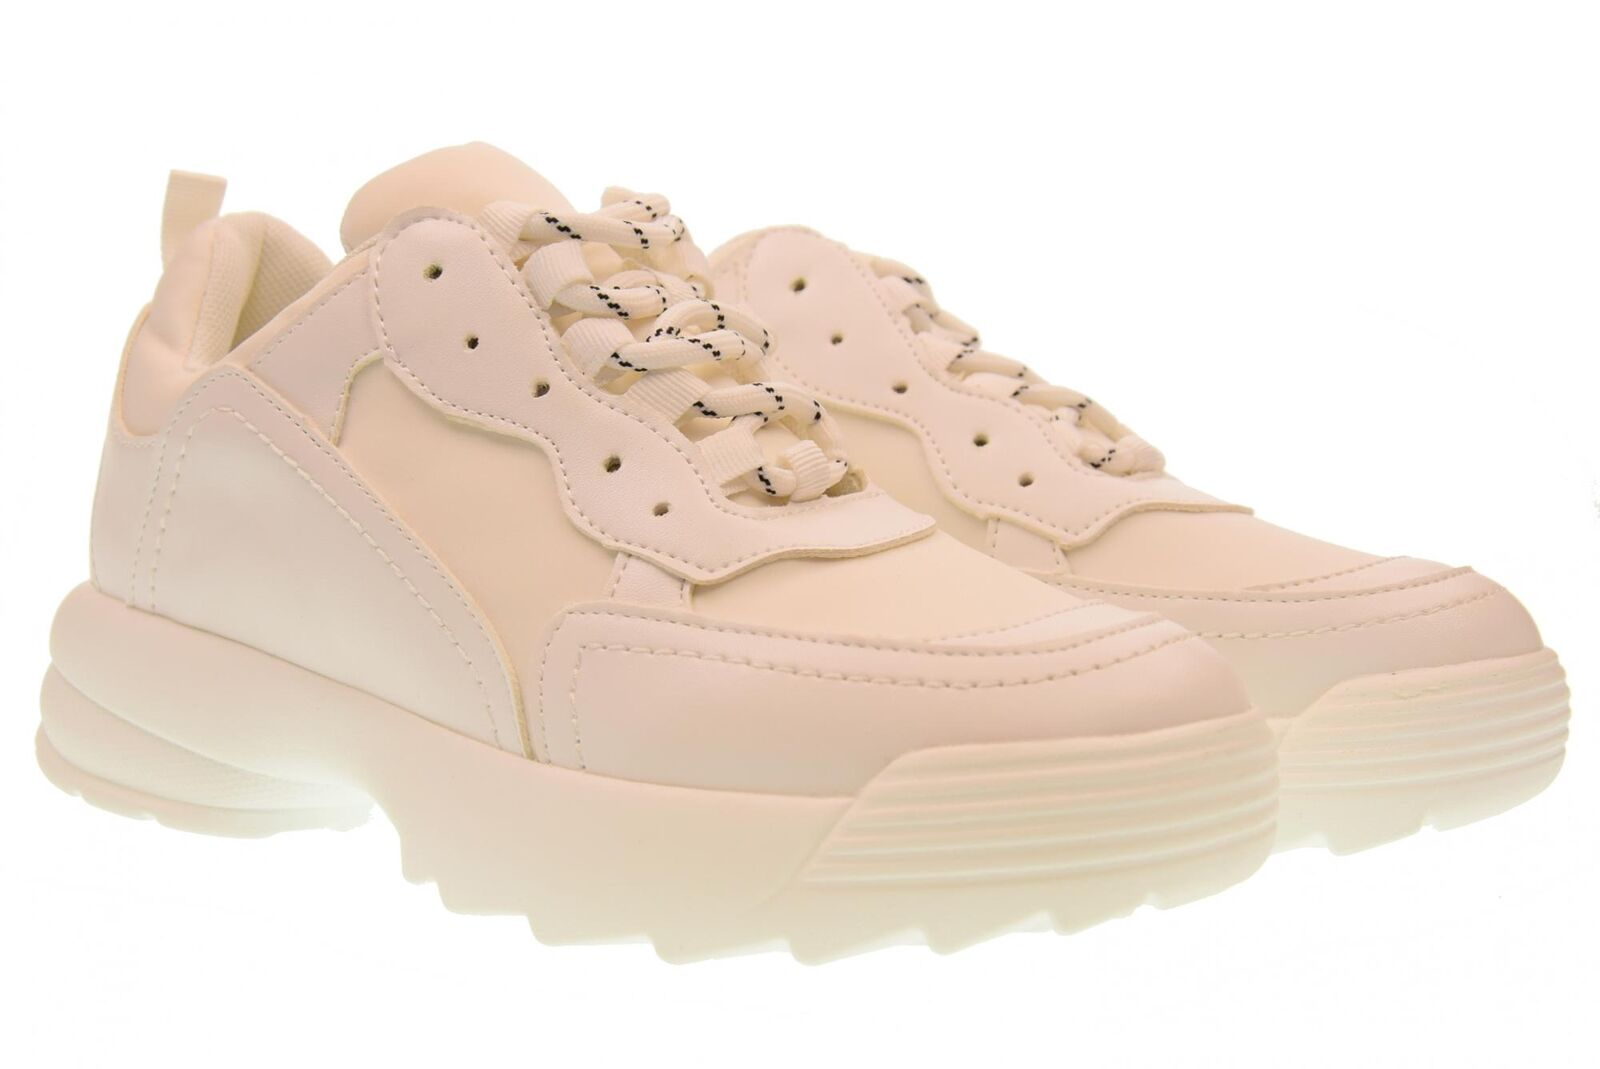 or & or a18g Chaussures Femme Basses De Sport Avec Plate-forme gt531 Bianco